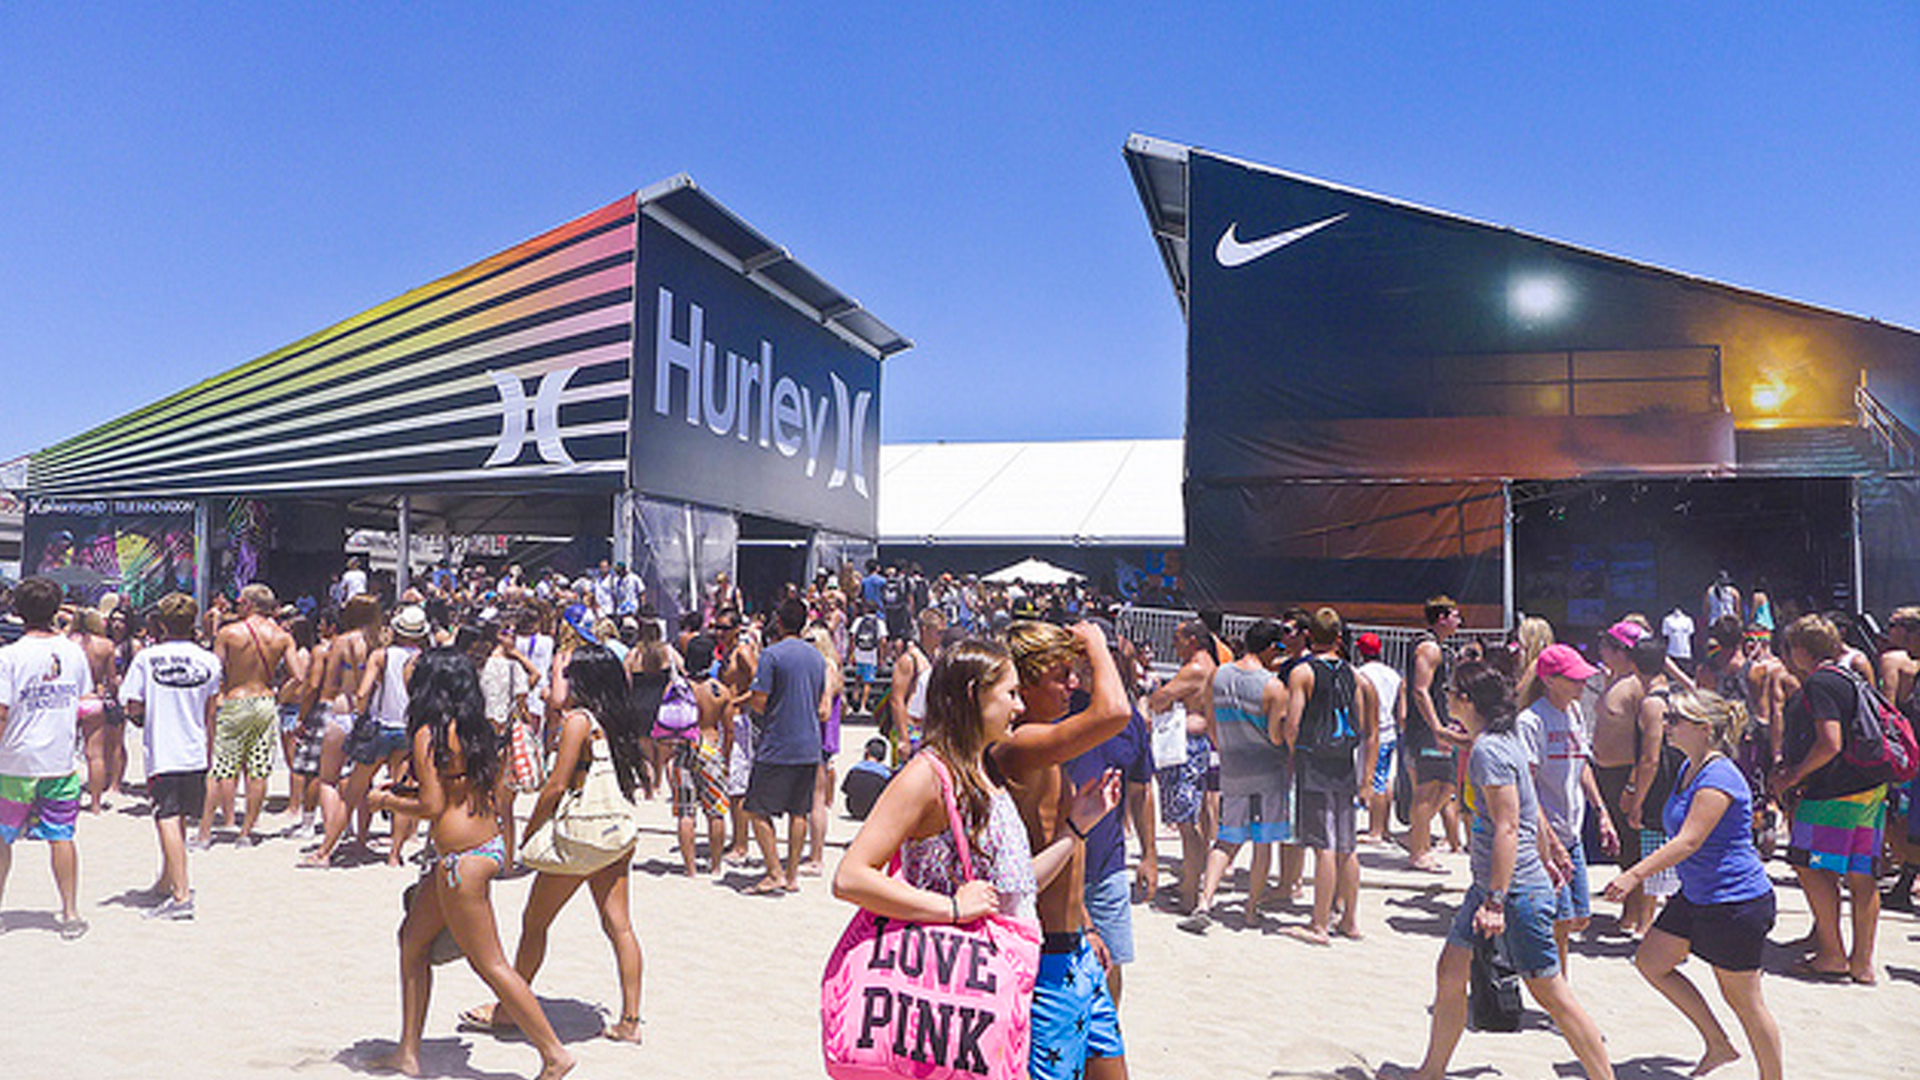 NIKE U.S. Open Surfing Beach Event. Live stage tent activation, product information, leaderboard, and celebrity signings.